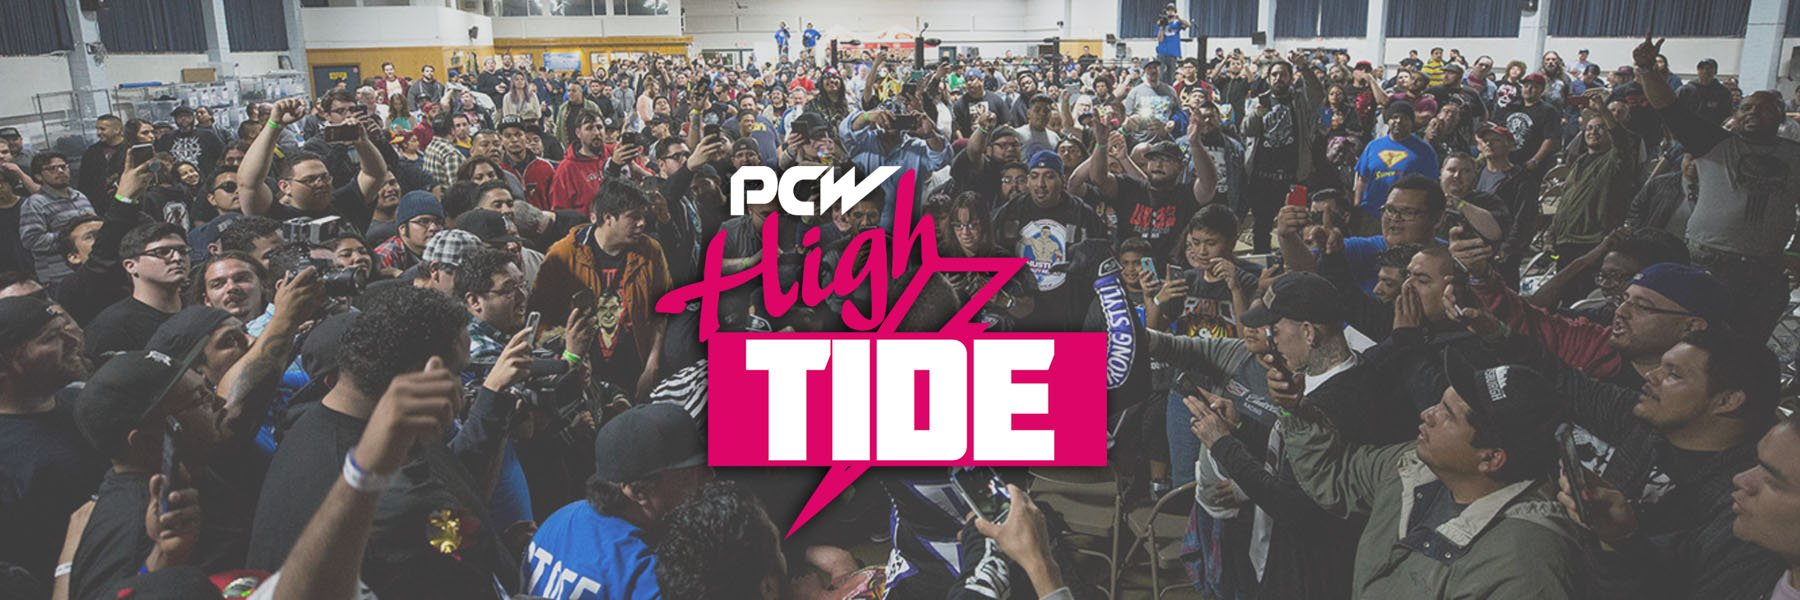 PCW ULTRA | HIGH TIDE: Subscribe $4.99 mo. // Rent $2.99 // Buy $9.99